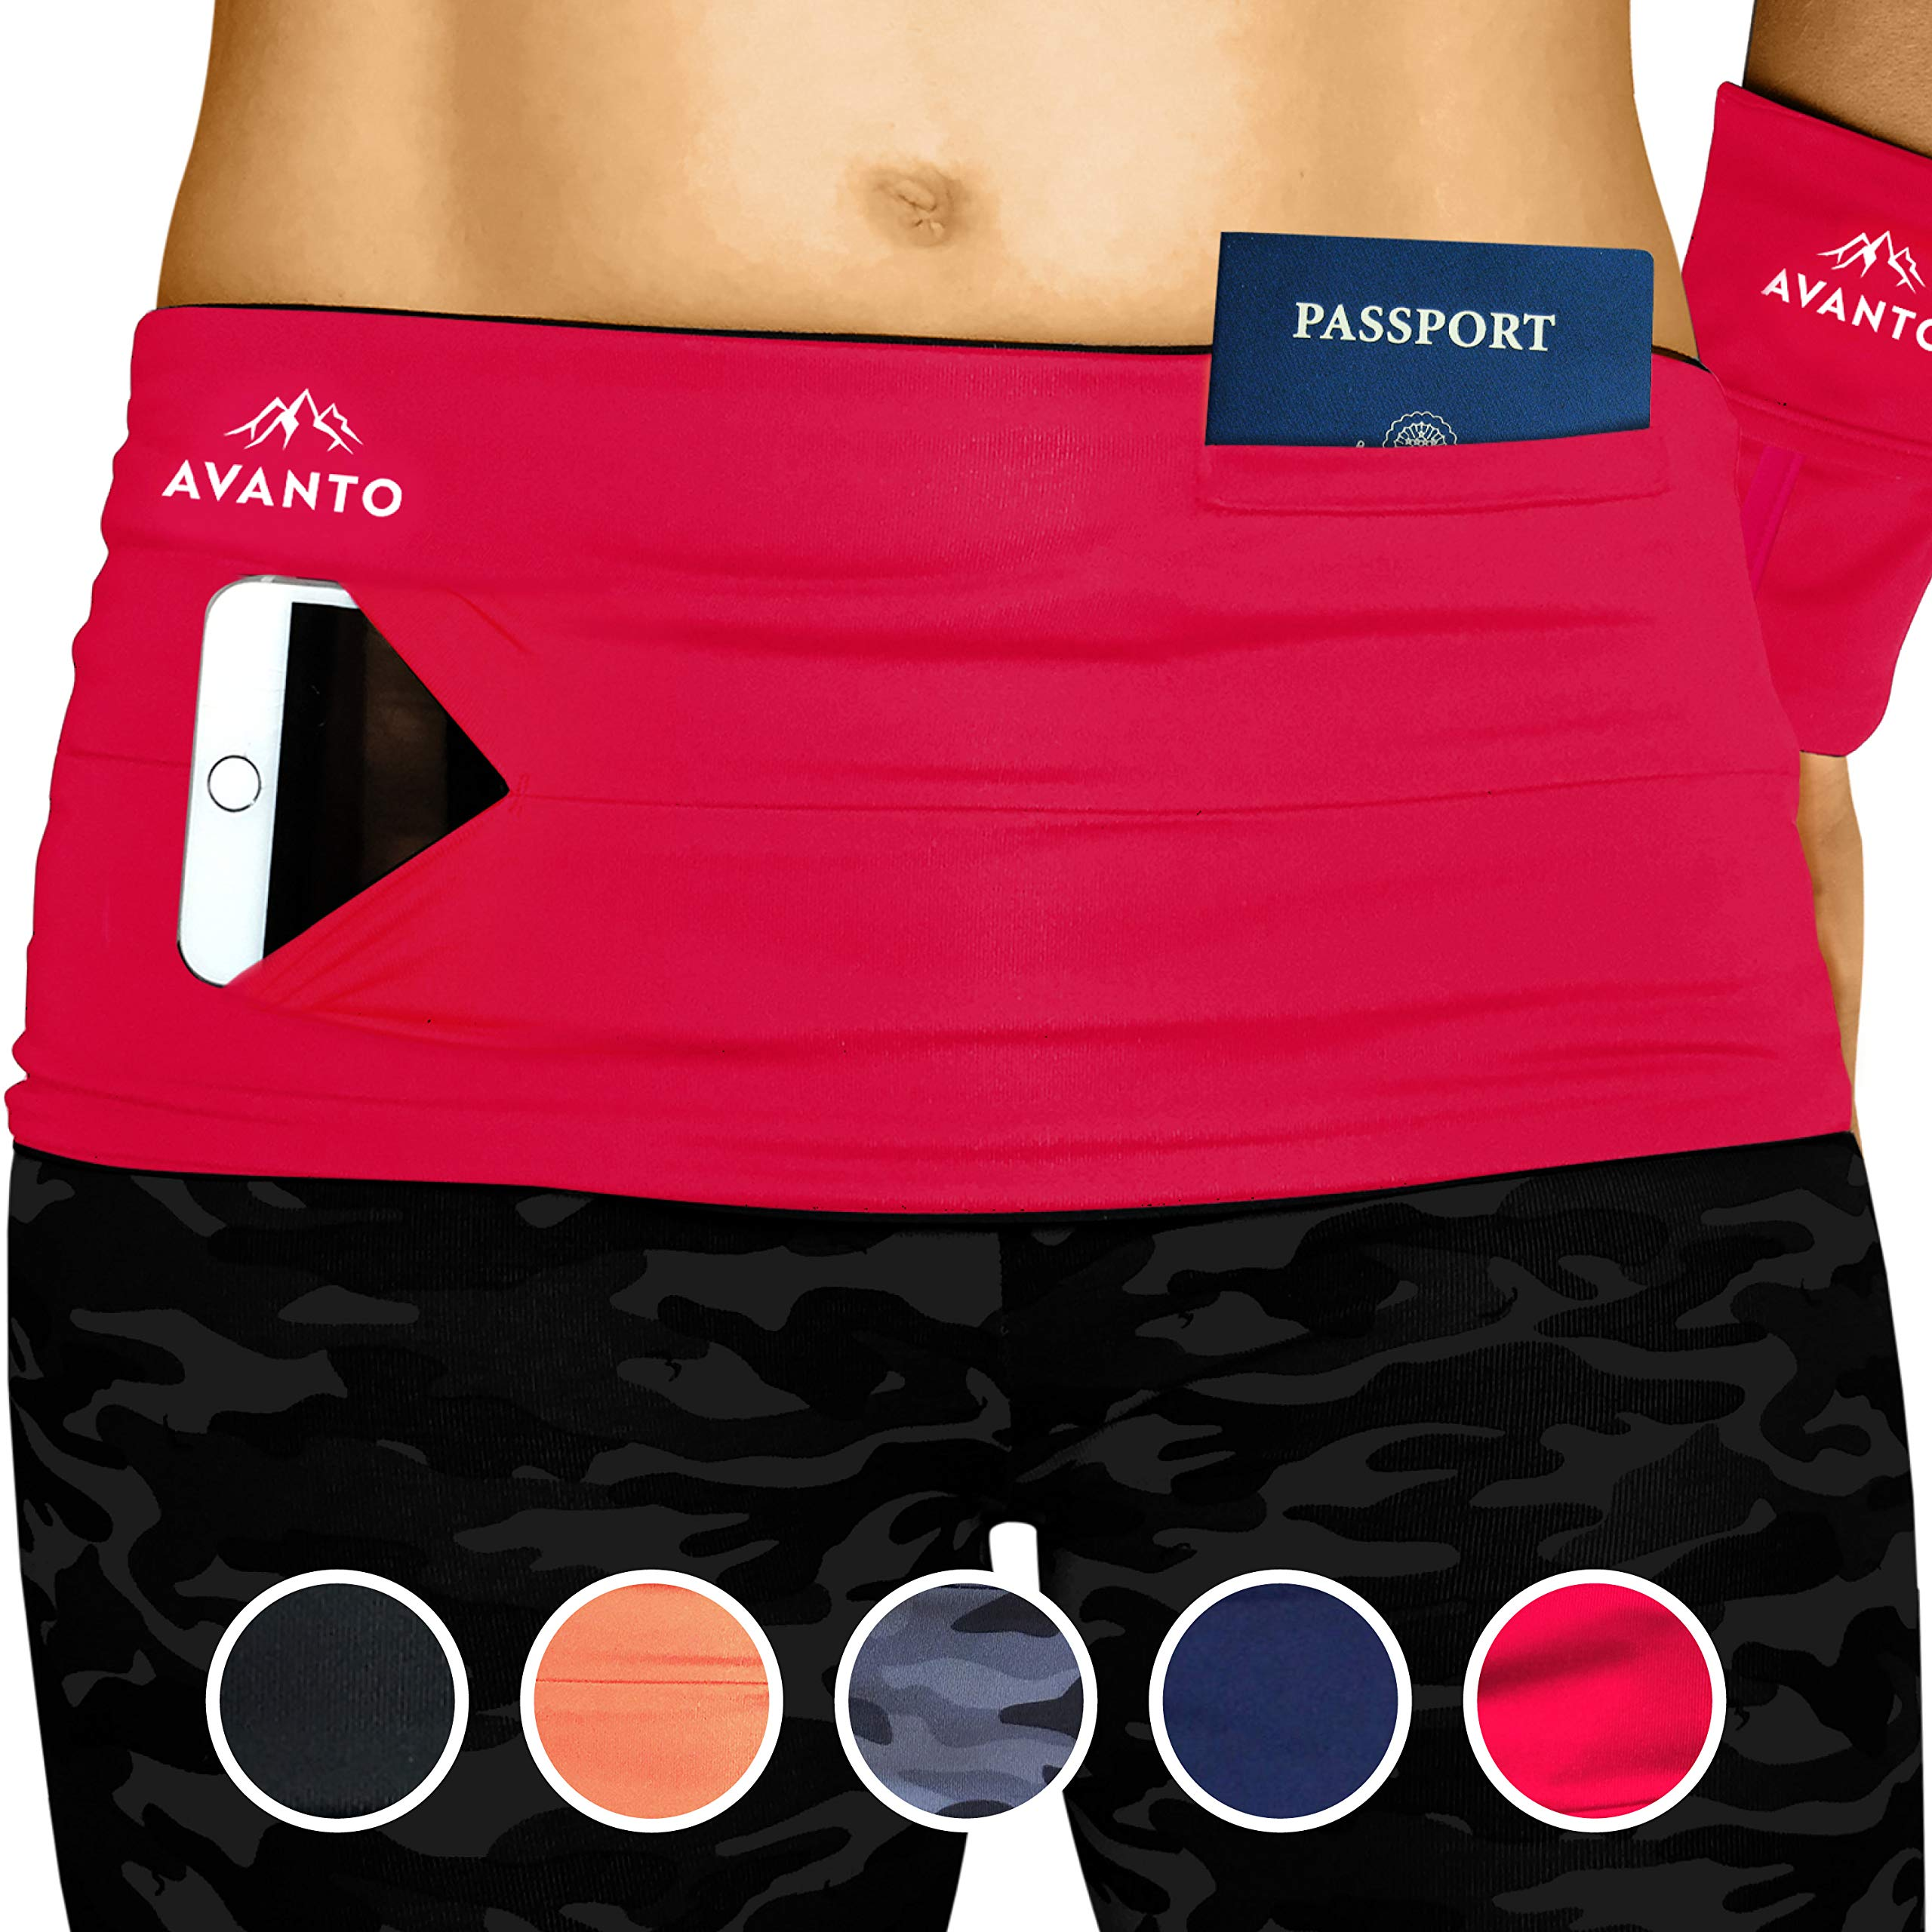 AVANTO Slim Fit Travel Money Belt with Free Wrist Wallet, Running Belt, Waist and Fanny Pack for Travel, for Women and Men, Comfortable Like Second Skin, Red, L by Avanto Lifestyle